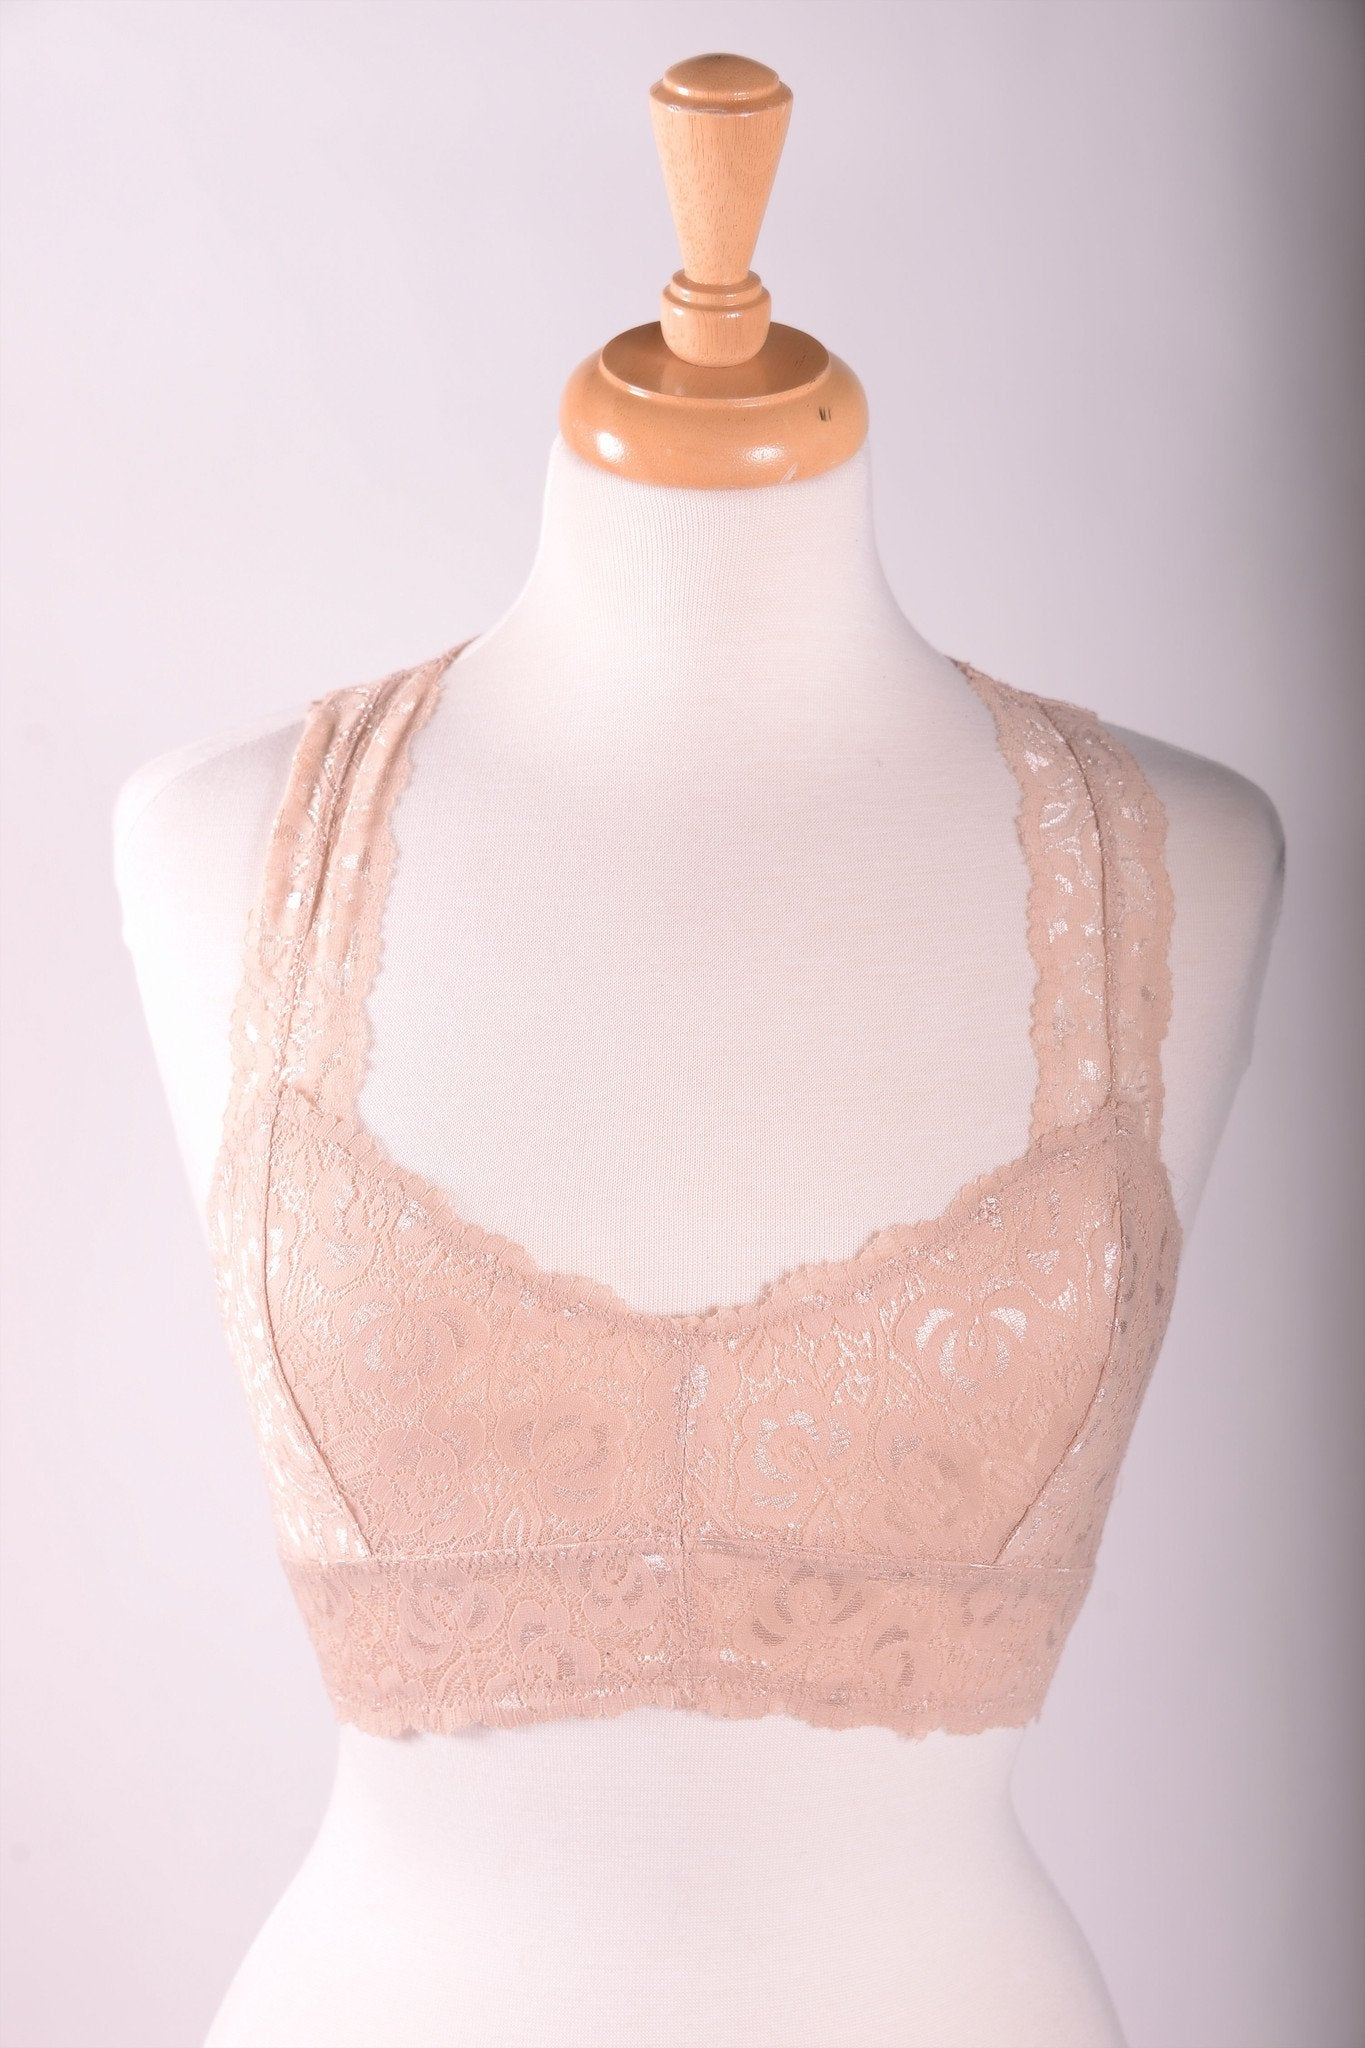 Lace Racerback Bralette (Sizes 4-18) - Taupe - BRA810TA-Tee for the Soul